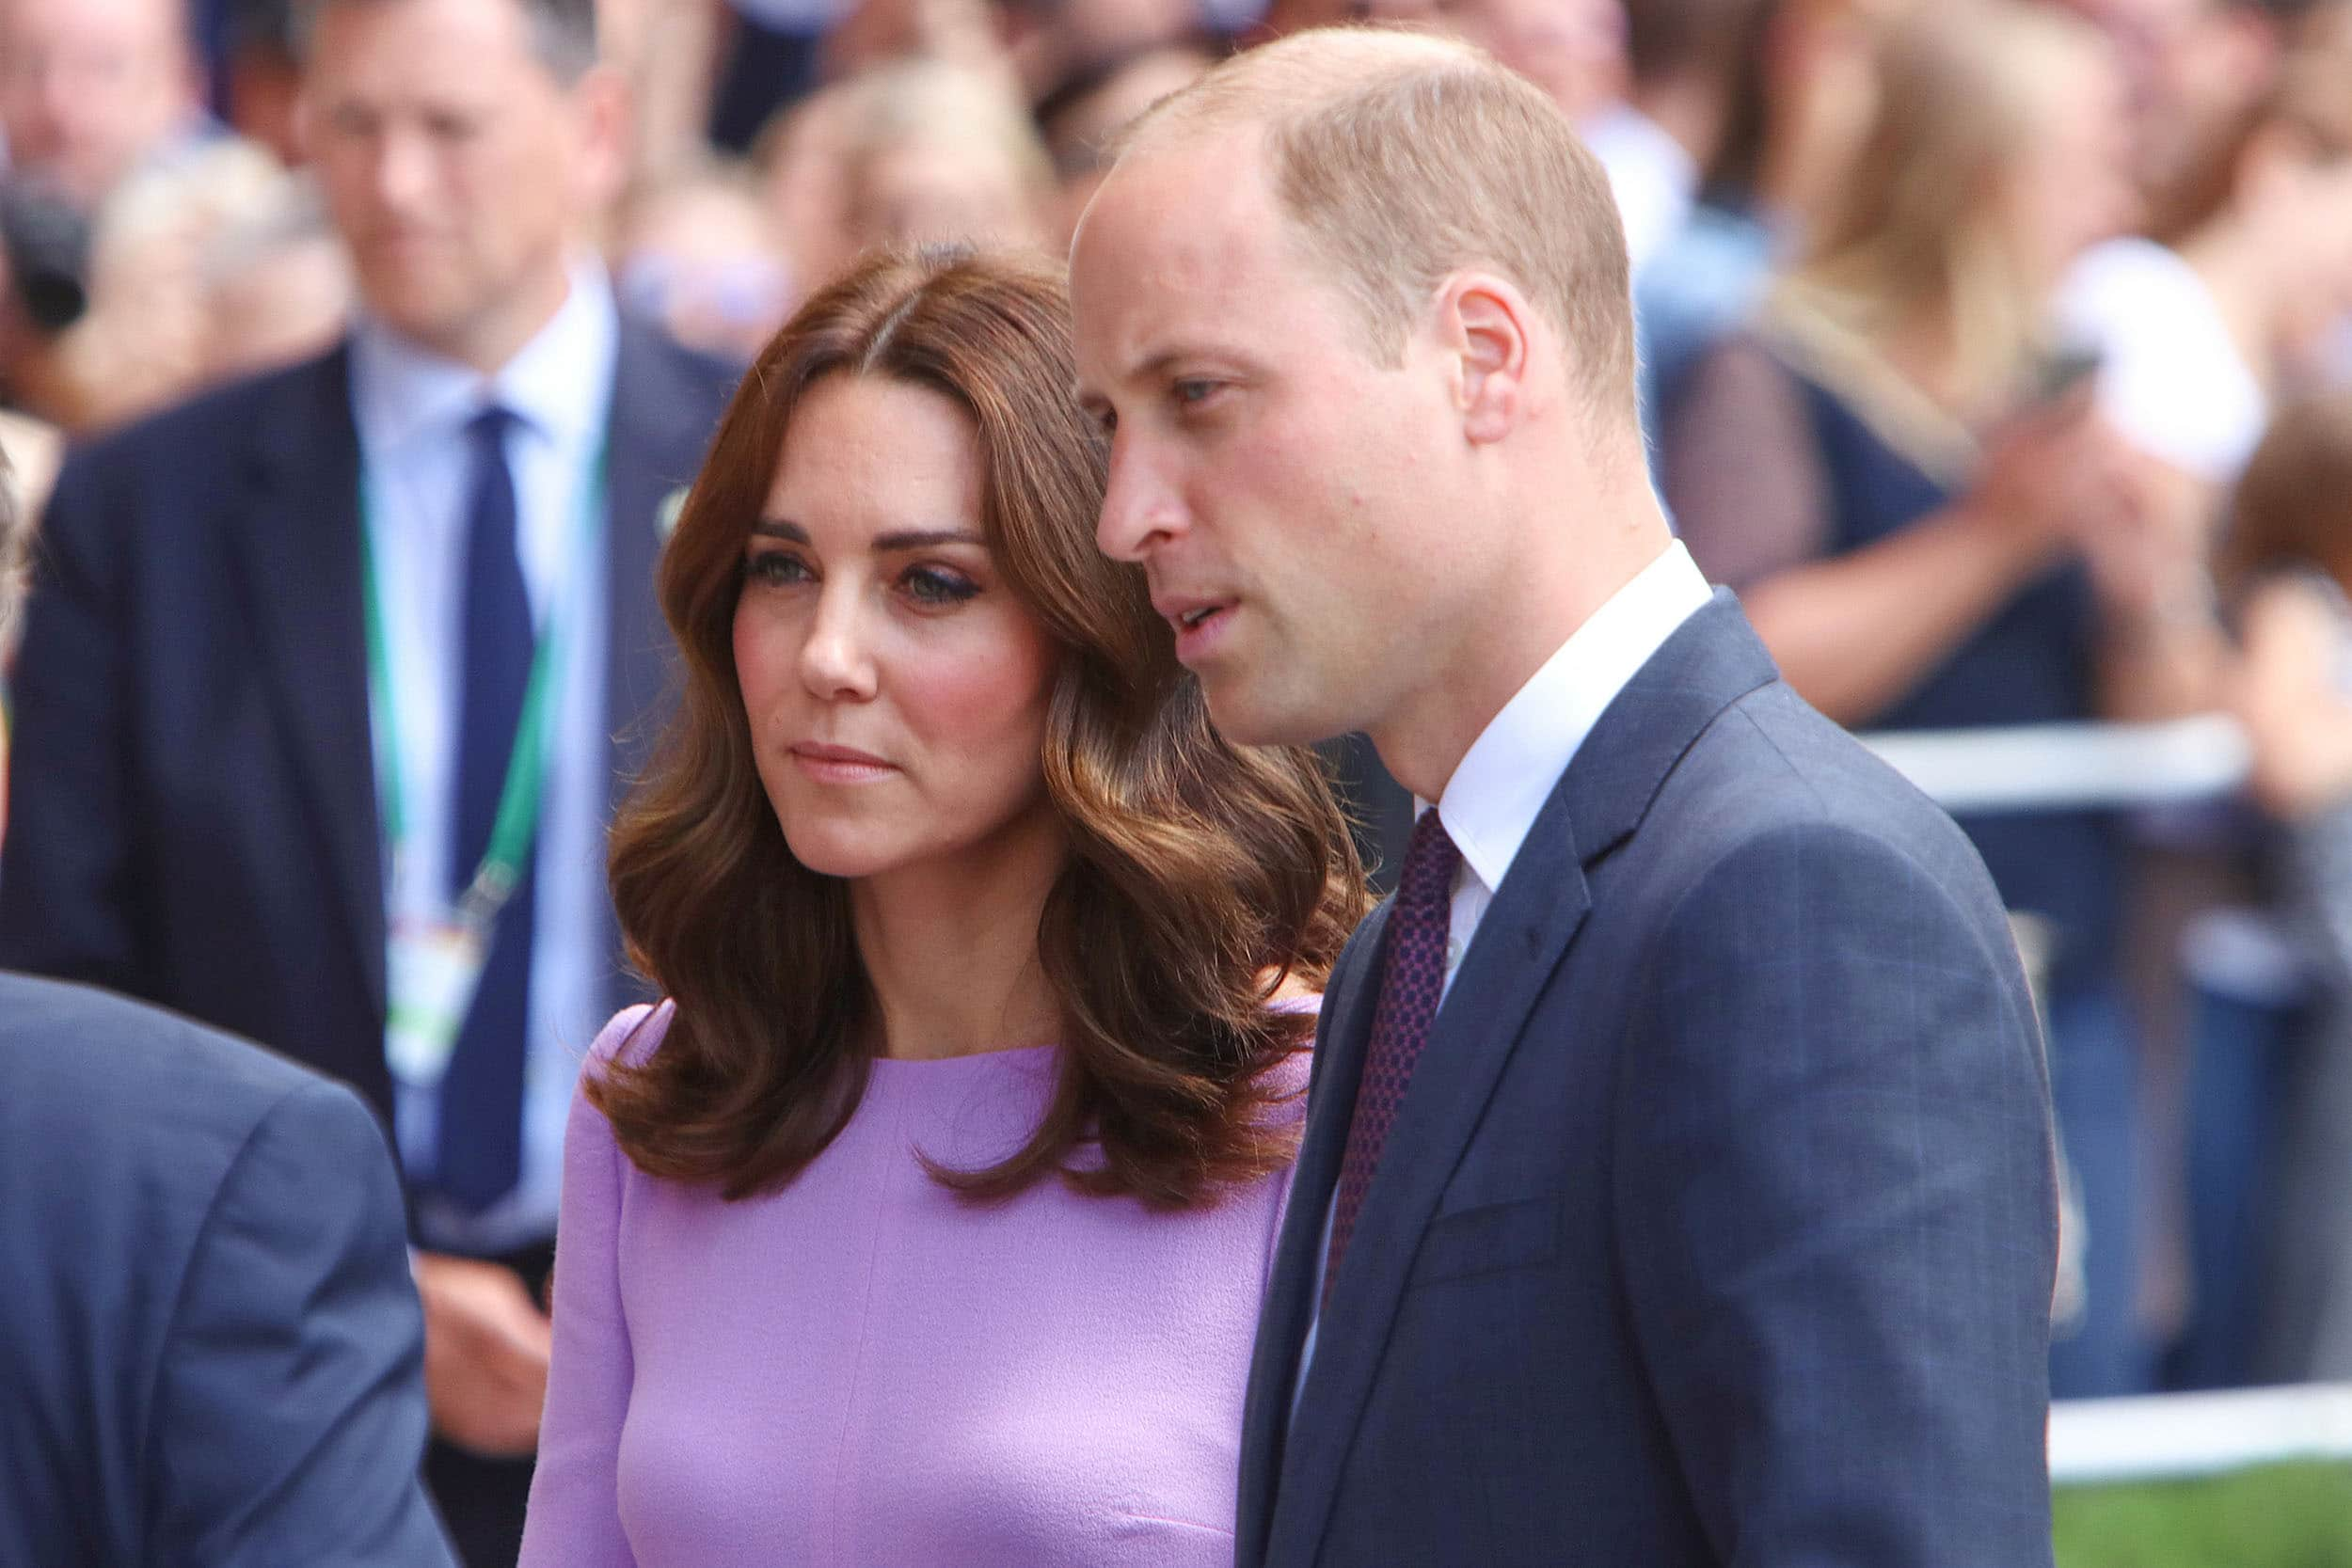 Kate Middleton: Wollte Prinz William gar kein drittes Baby?